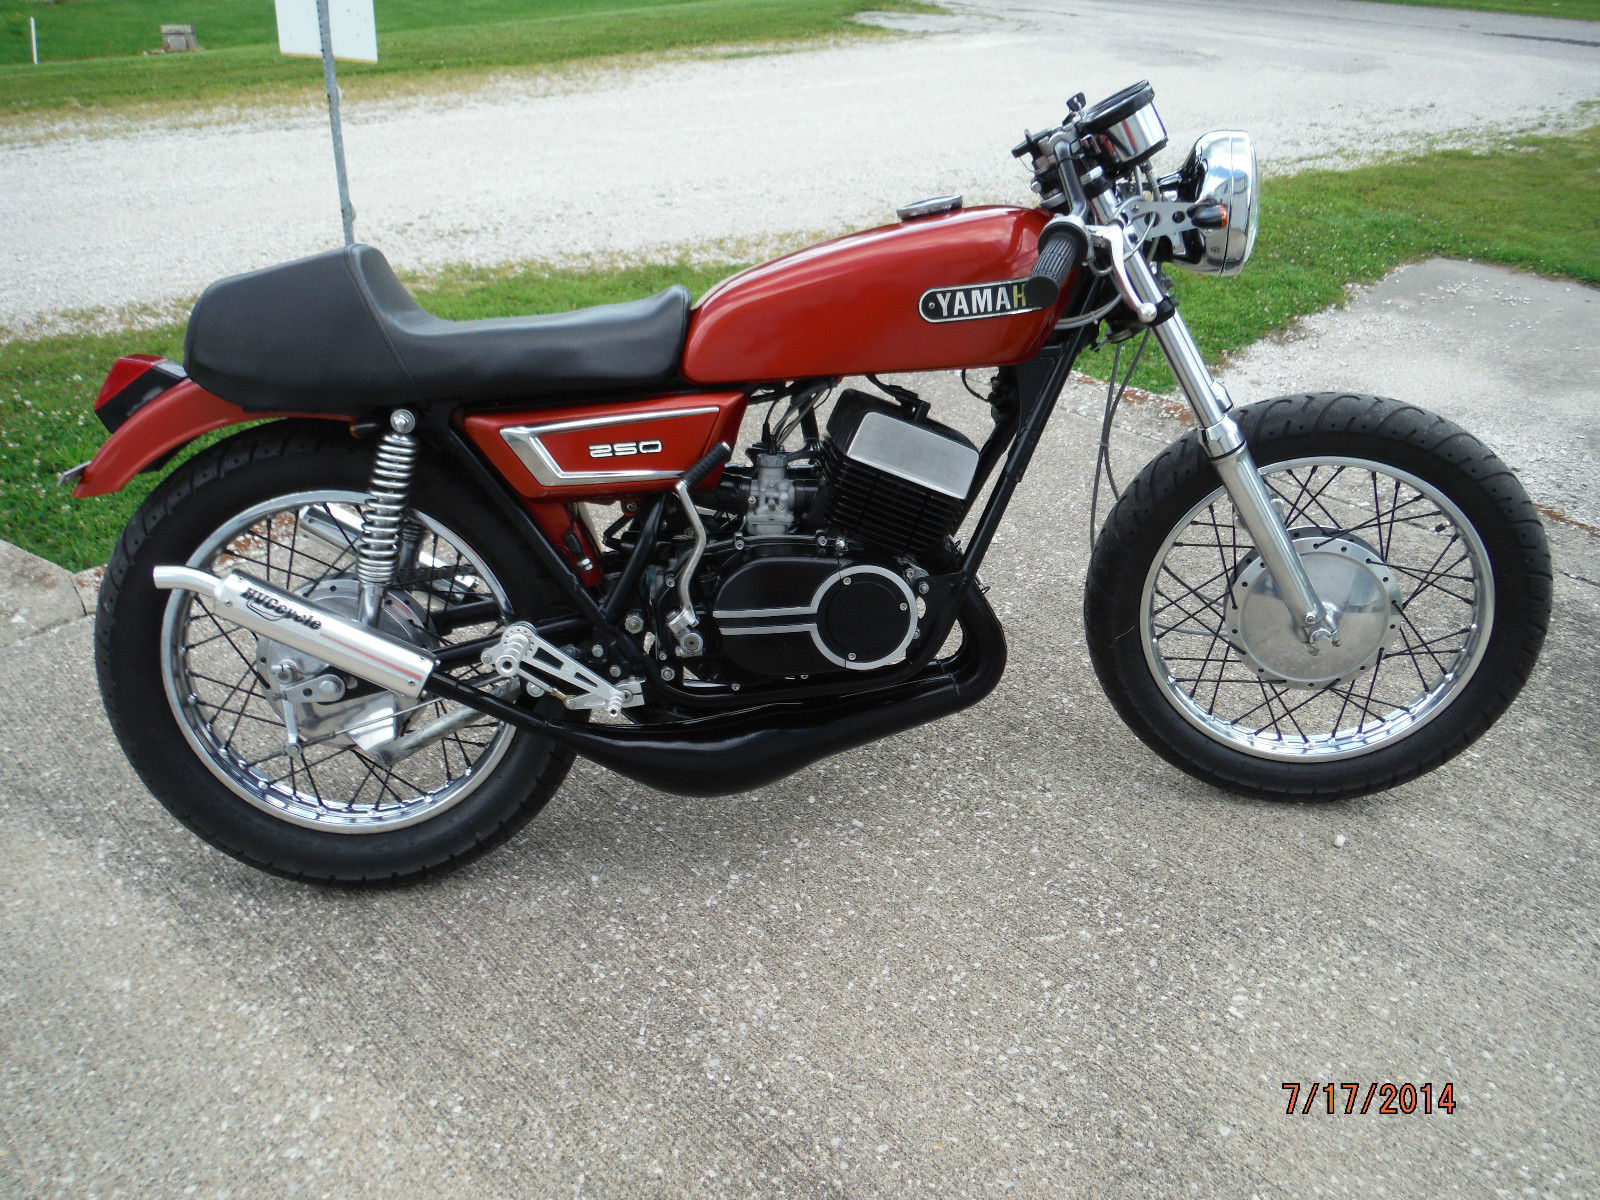 1972 yamaha ds7 250cc rd vintage cafe racer two stroke. Black Bedroom Furniture Sets. Home Design Ideas